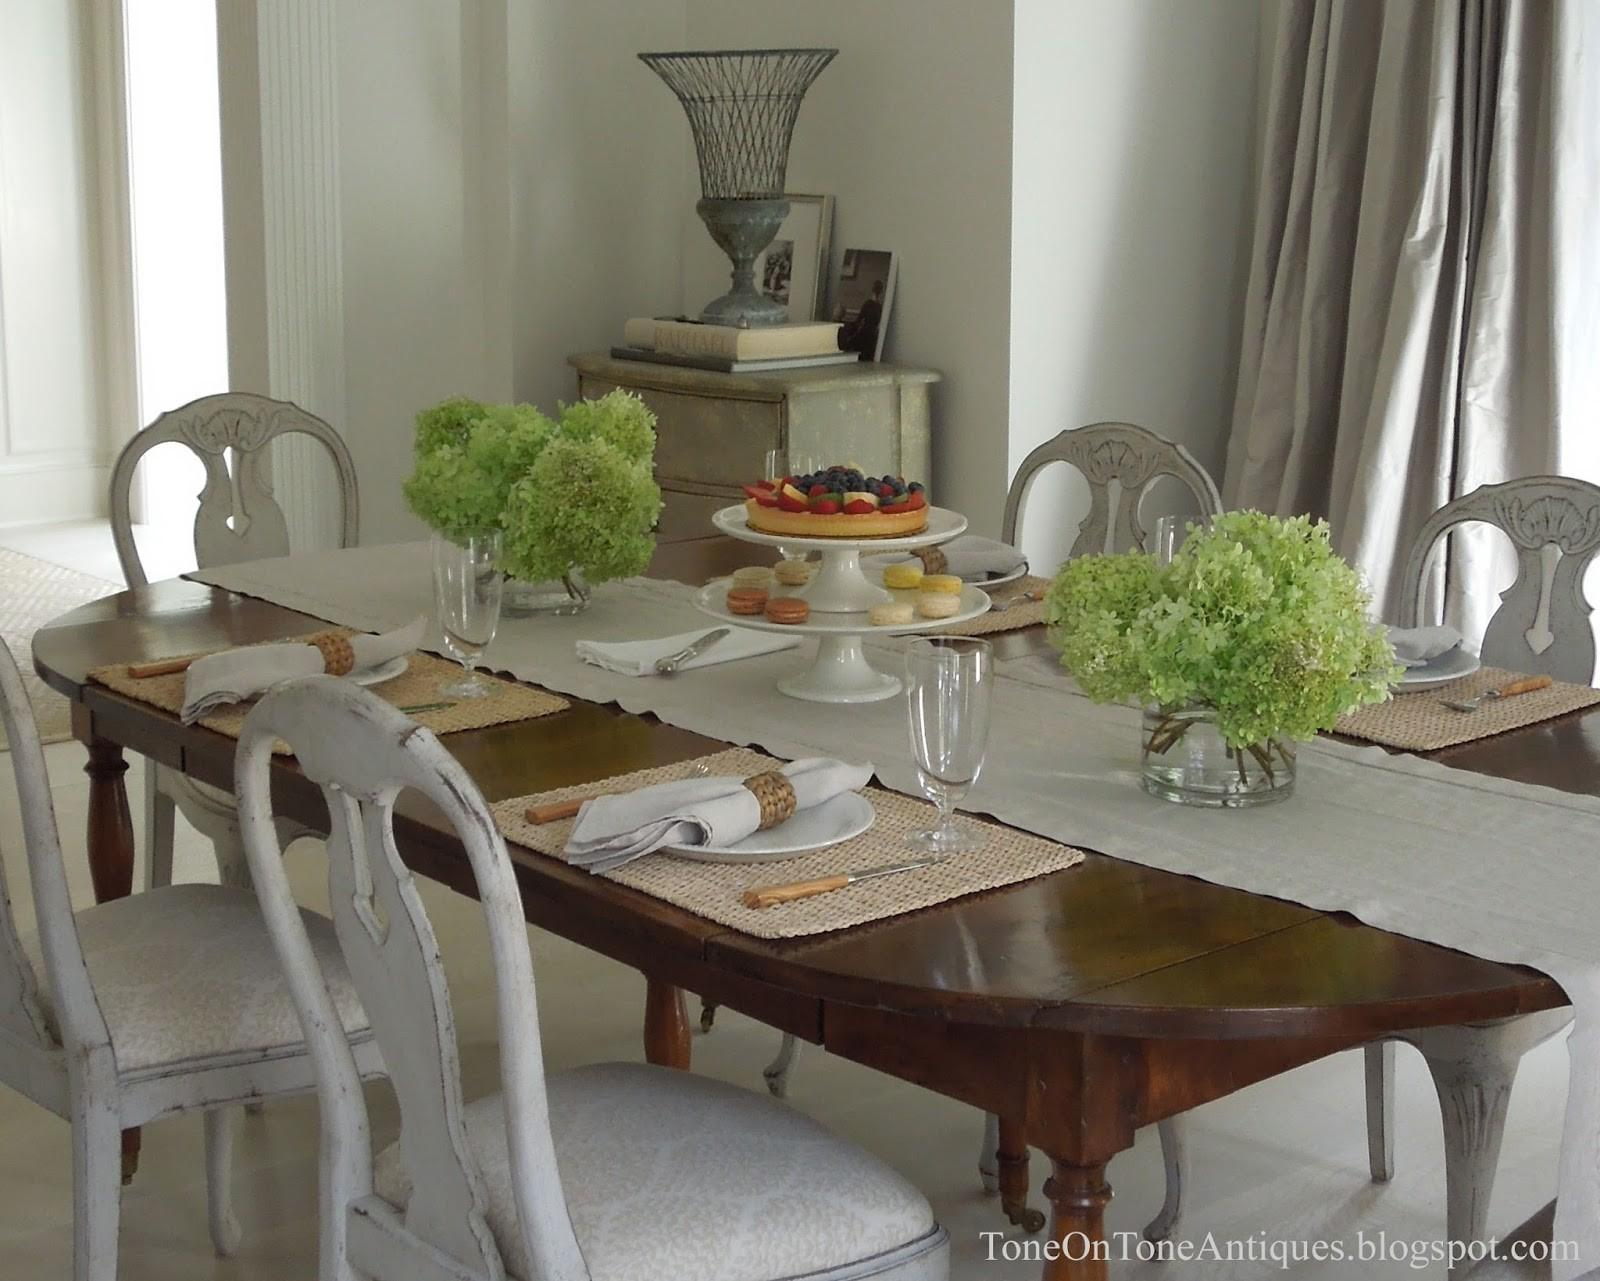 Appealing Simple Everyday Dining Table Decor Modern